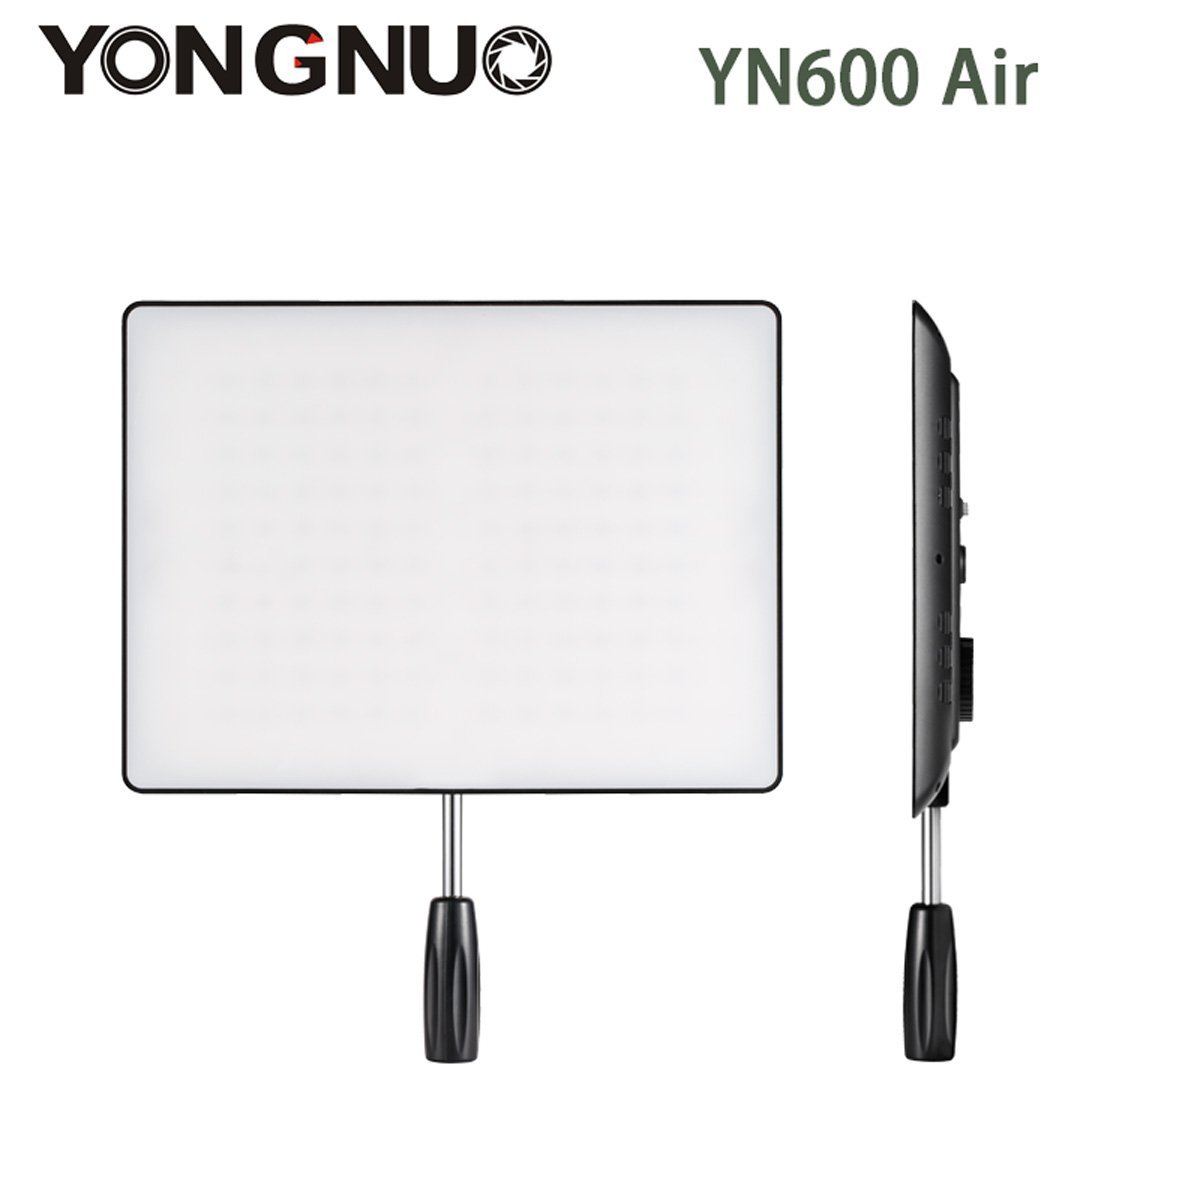 <font><b>YONGNUO</b></font> <font><b>YN600</b></font> Air Ultra Thin LED Camera Video Light 3200K-5500K for Canon for Nikon for Pentax for Olympas DSLR & Camcorder image